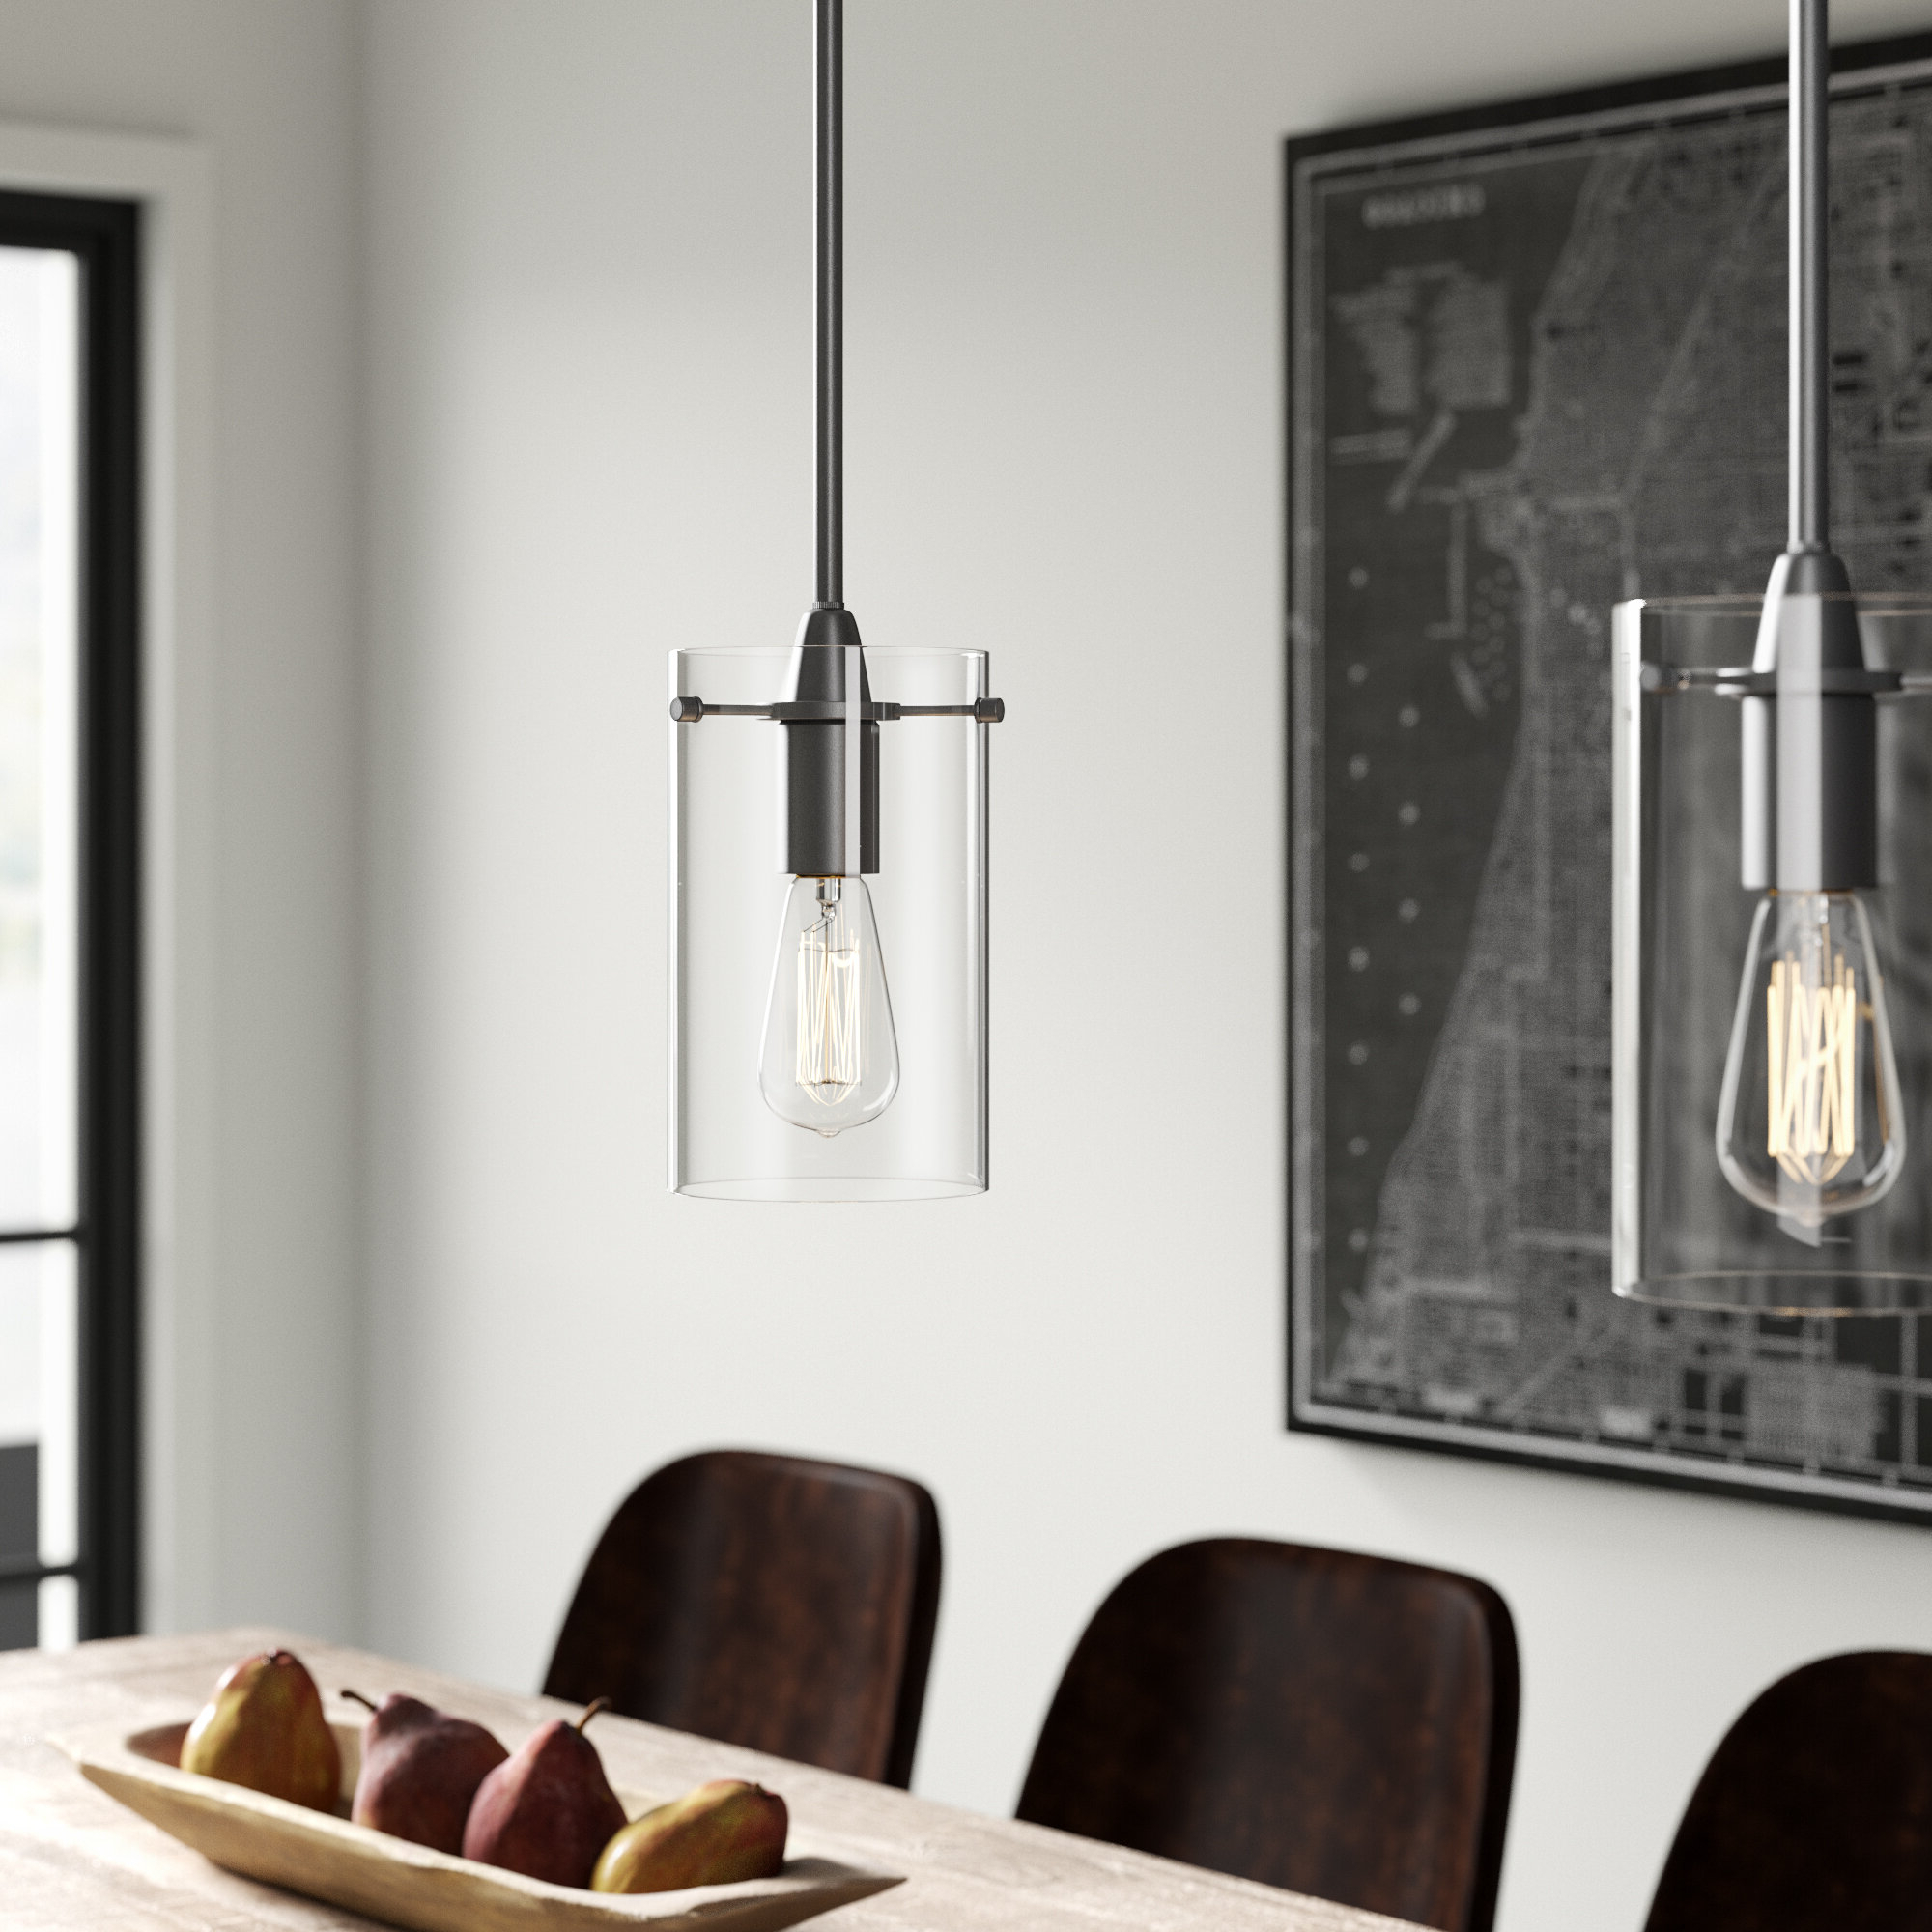 Cinchring 1 Light Cone Pendants With Well Known Angelina 1 Light Single Cylinder Pendant (View 8 of 25)